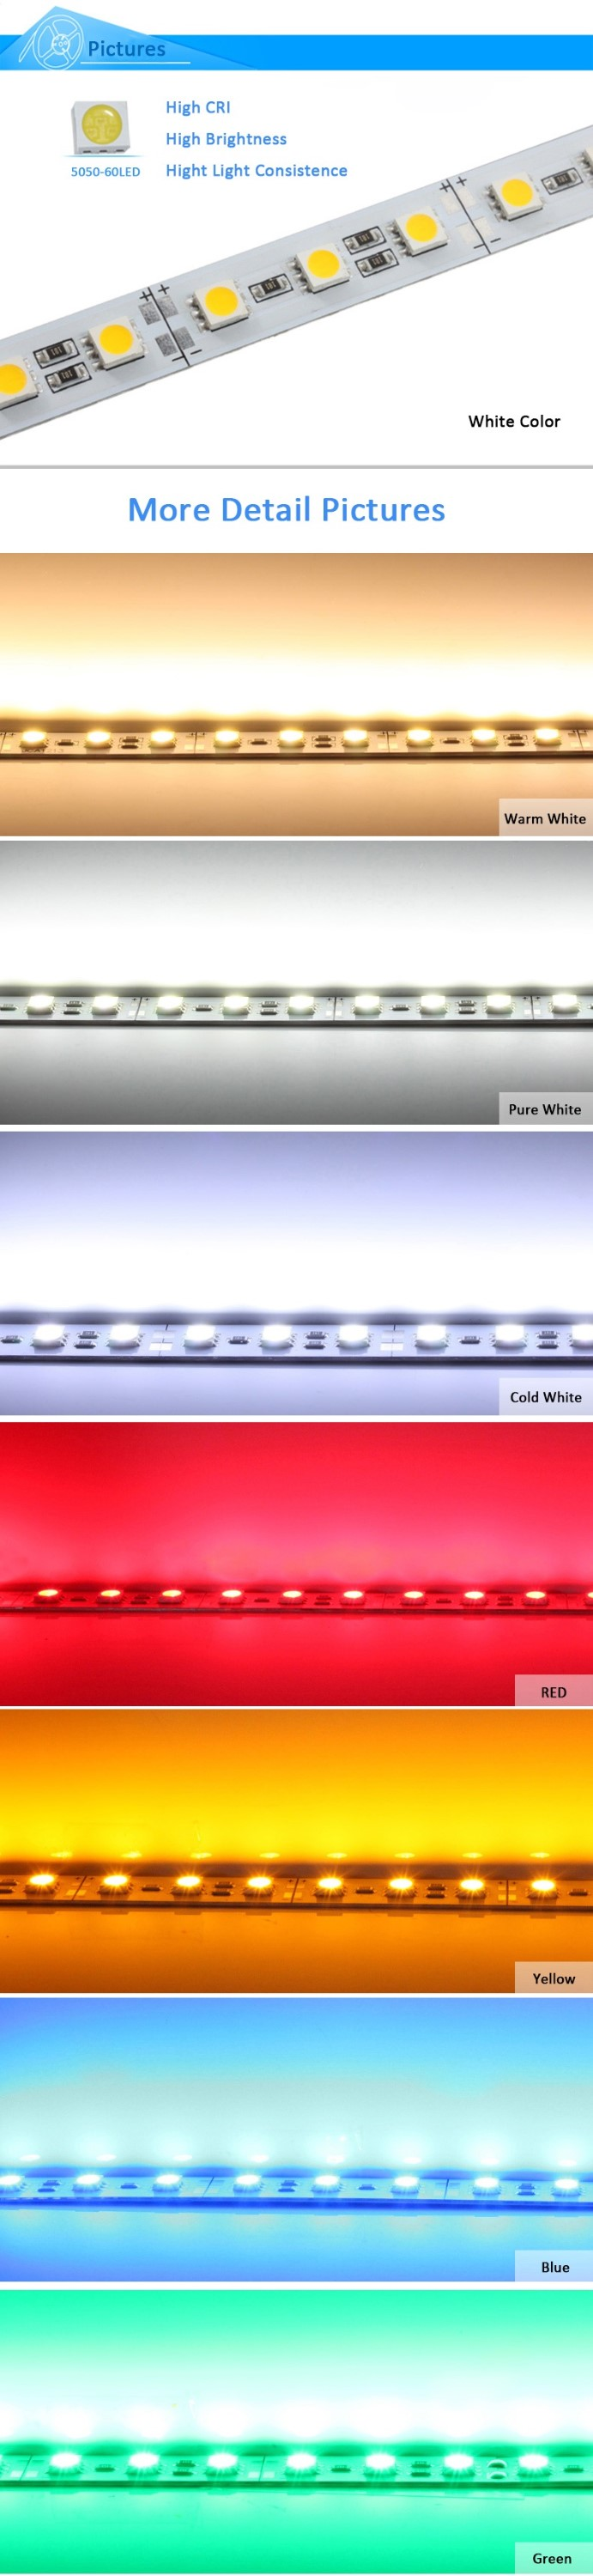 5050 LED Rigid Strip Pictures.jpg